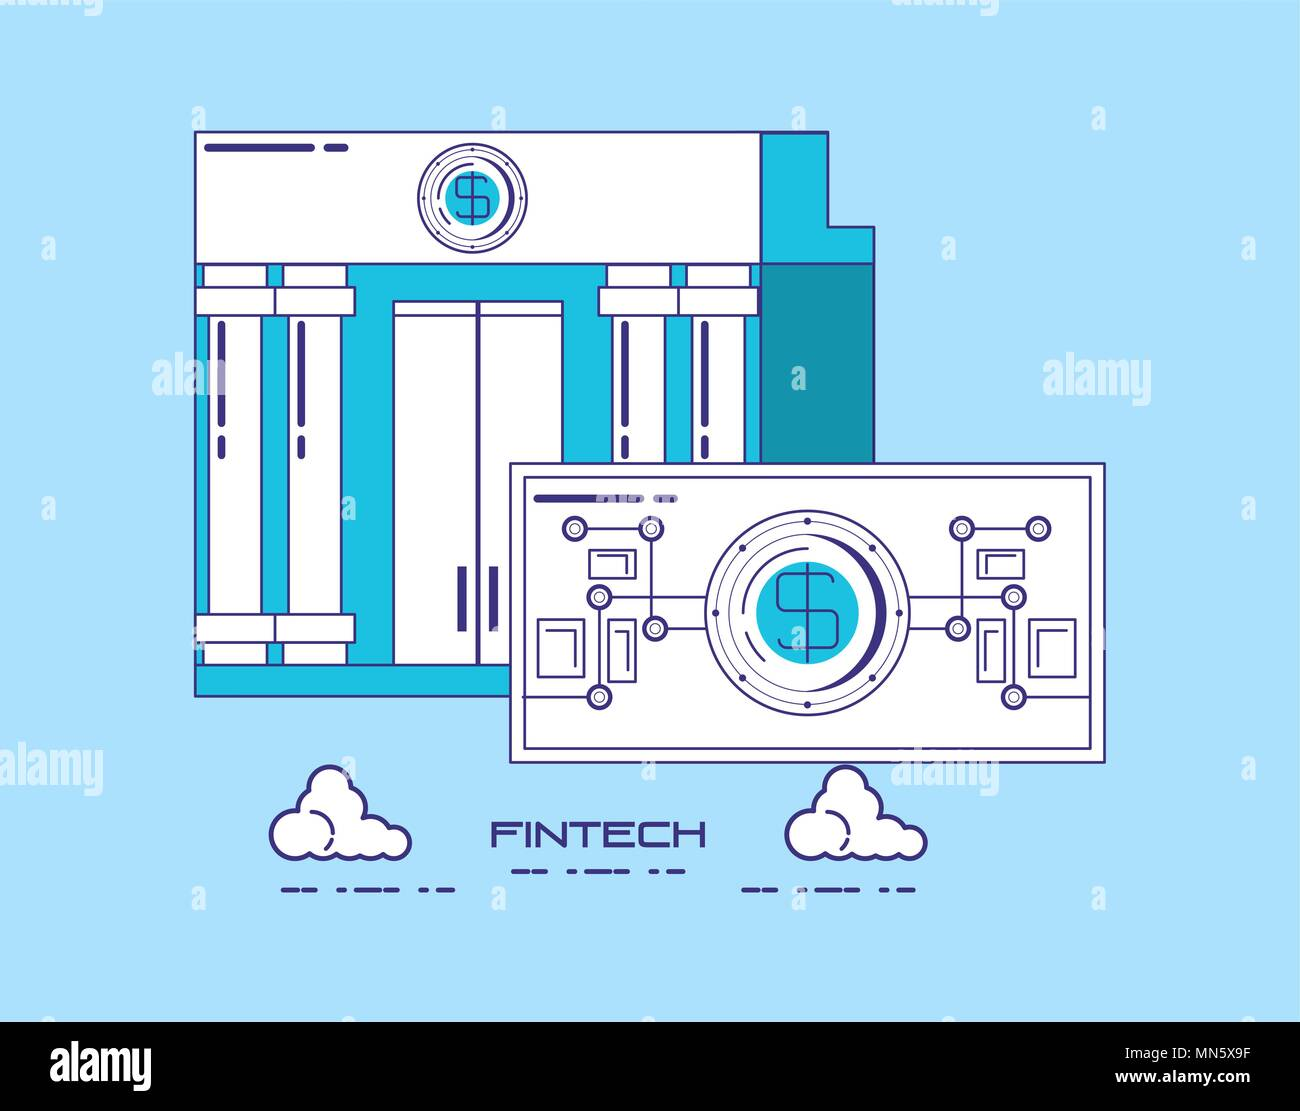 financial technology concept with bank building and money bill over blue background, vector illustration - Stock Image